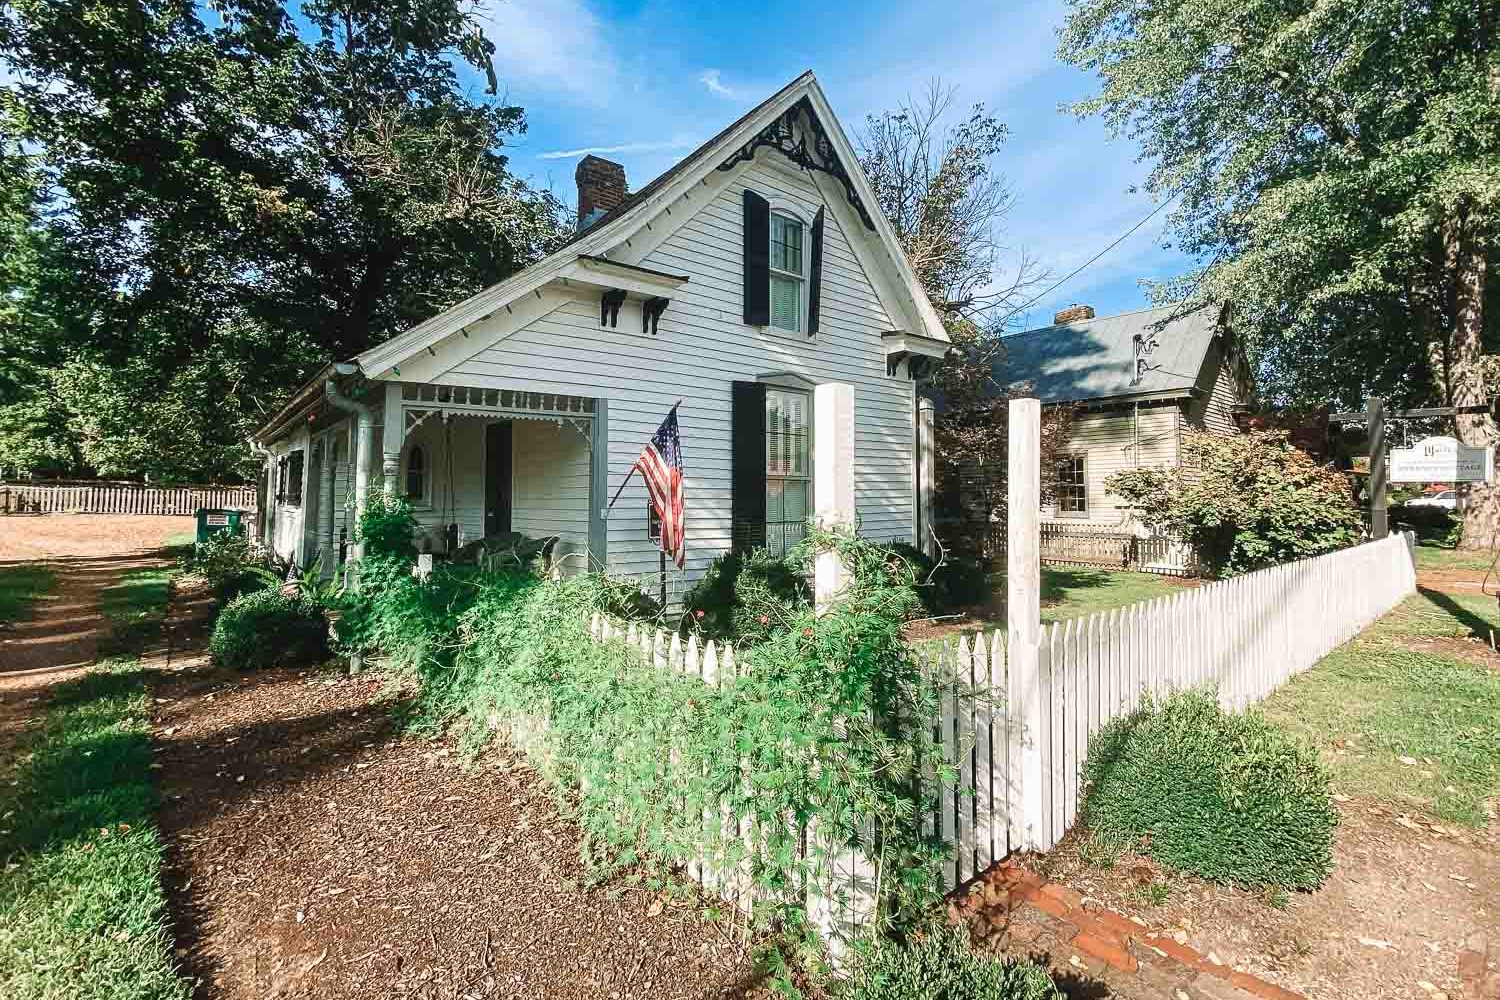 Exterior of white cottage in Leiper's Fork, Tennessee. There is a white picket fence surrounding the cottage and an American flag hanging from the front porch.